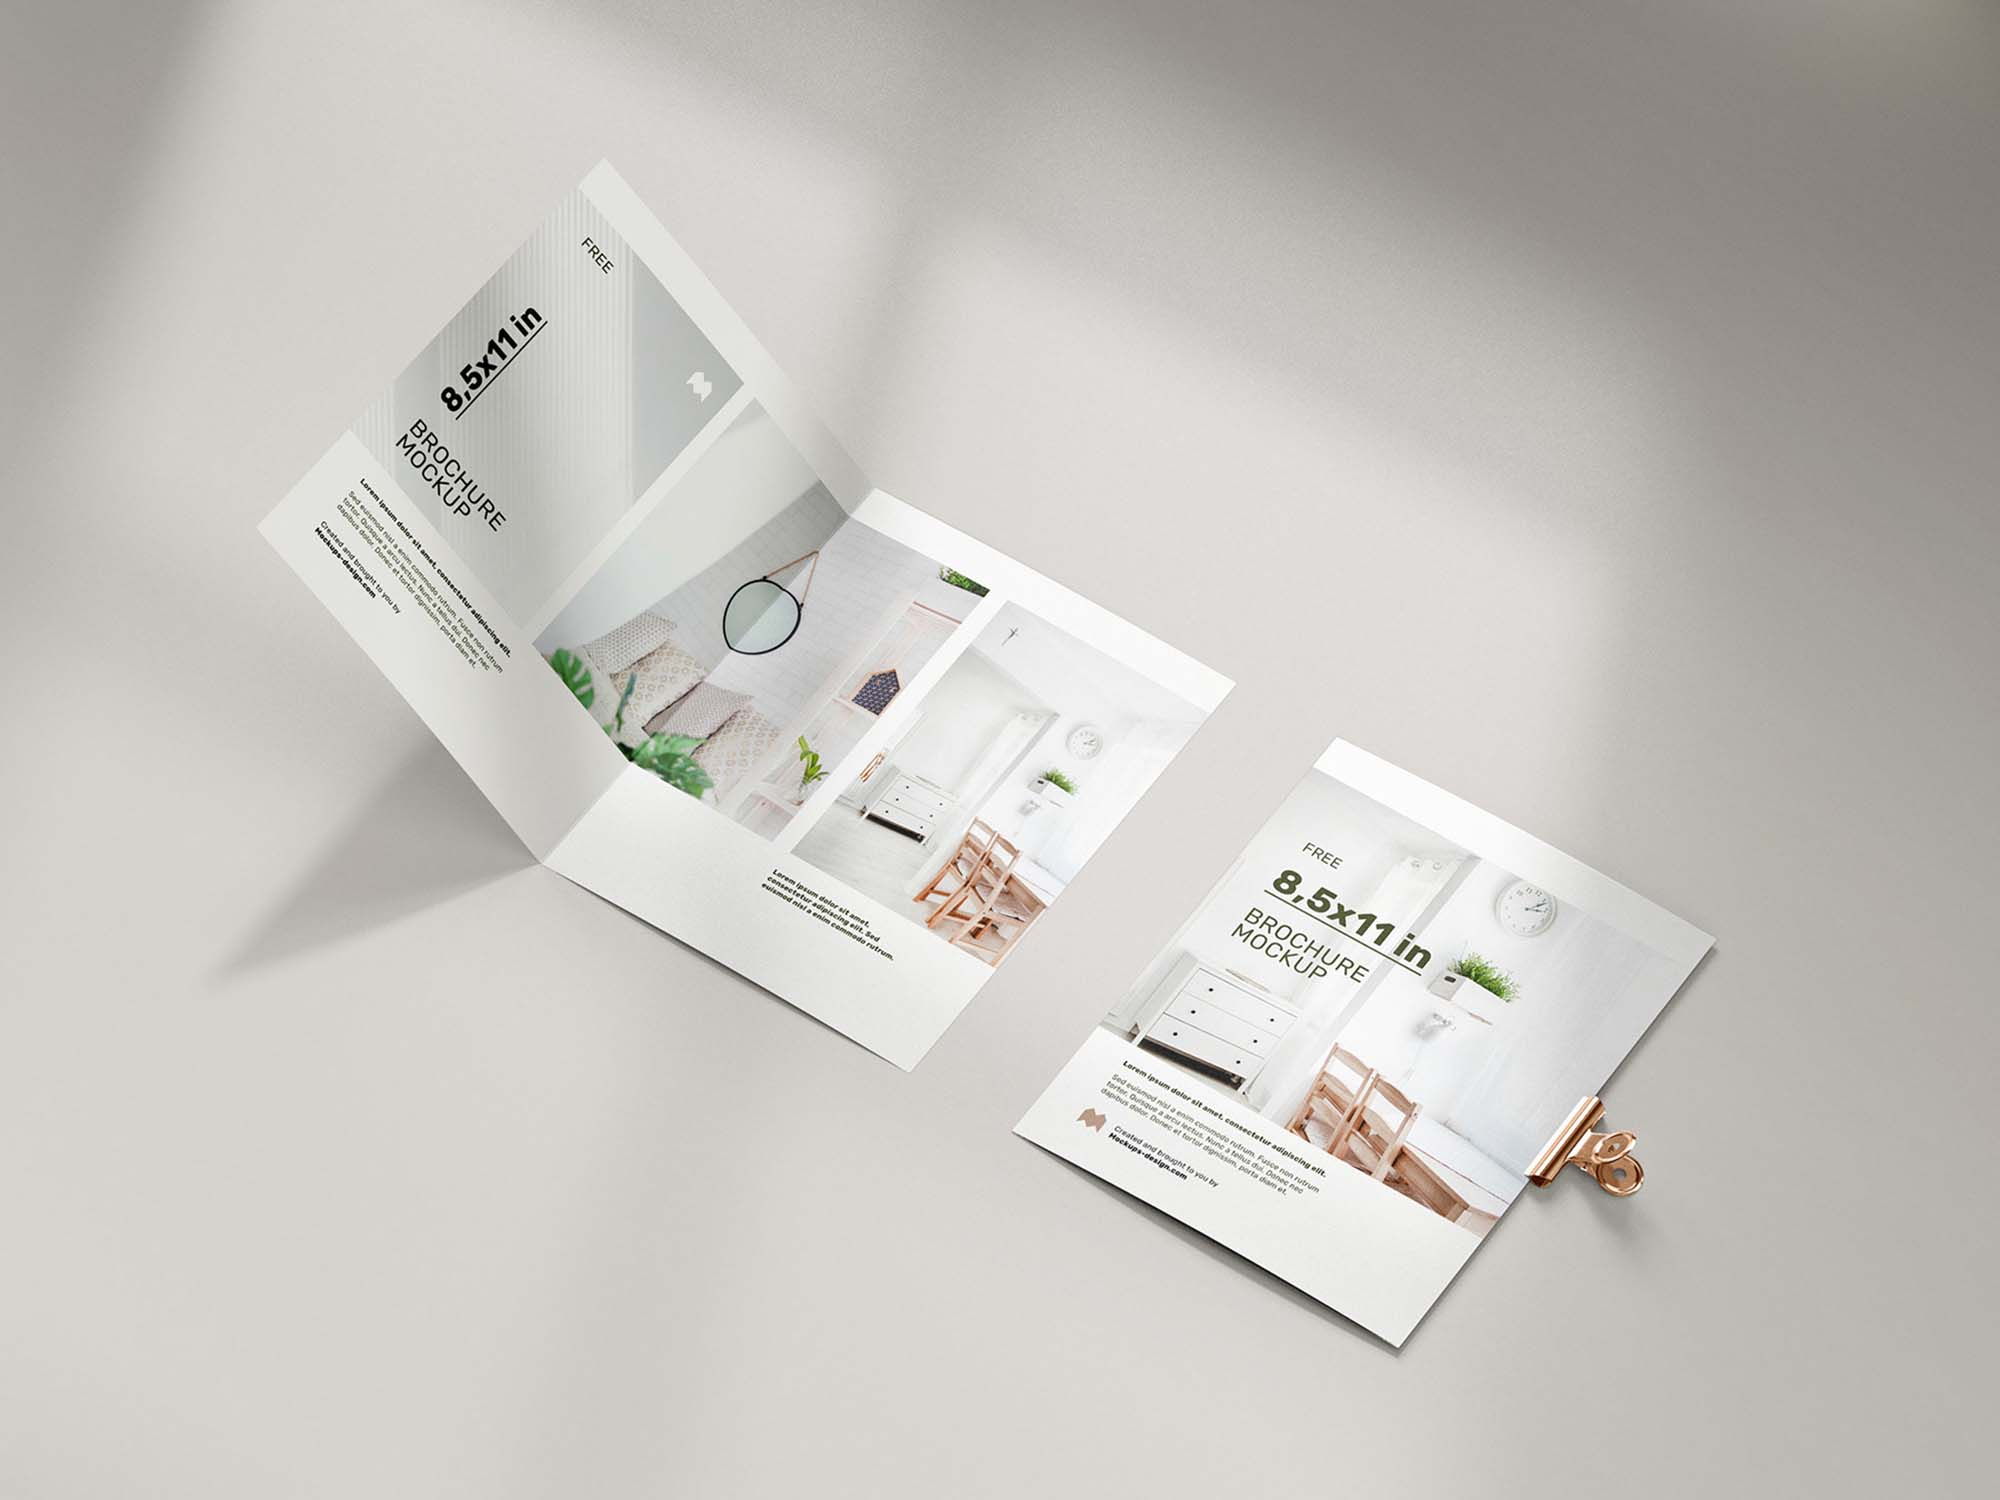 Folded 8.5 x 11 in Brochure Mockup 1